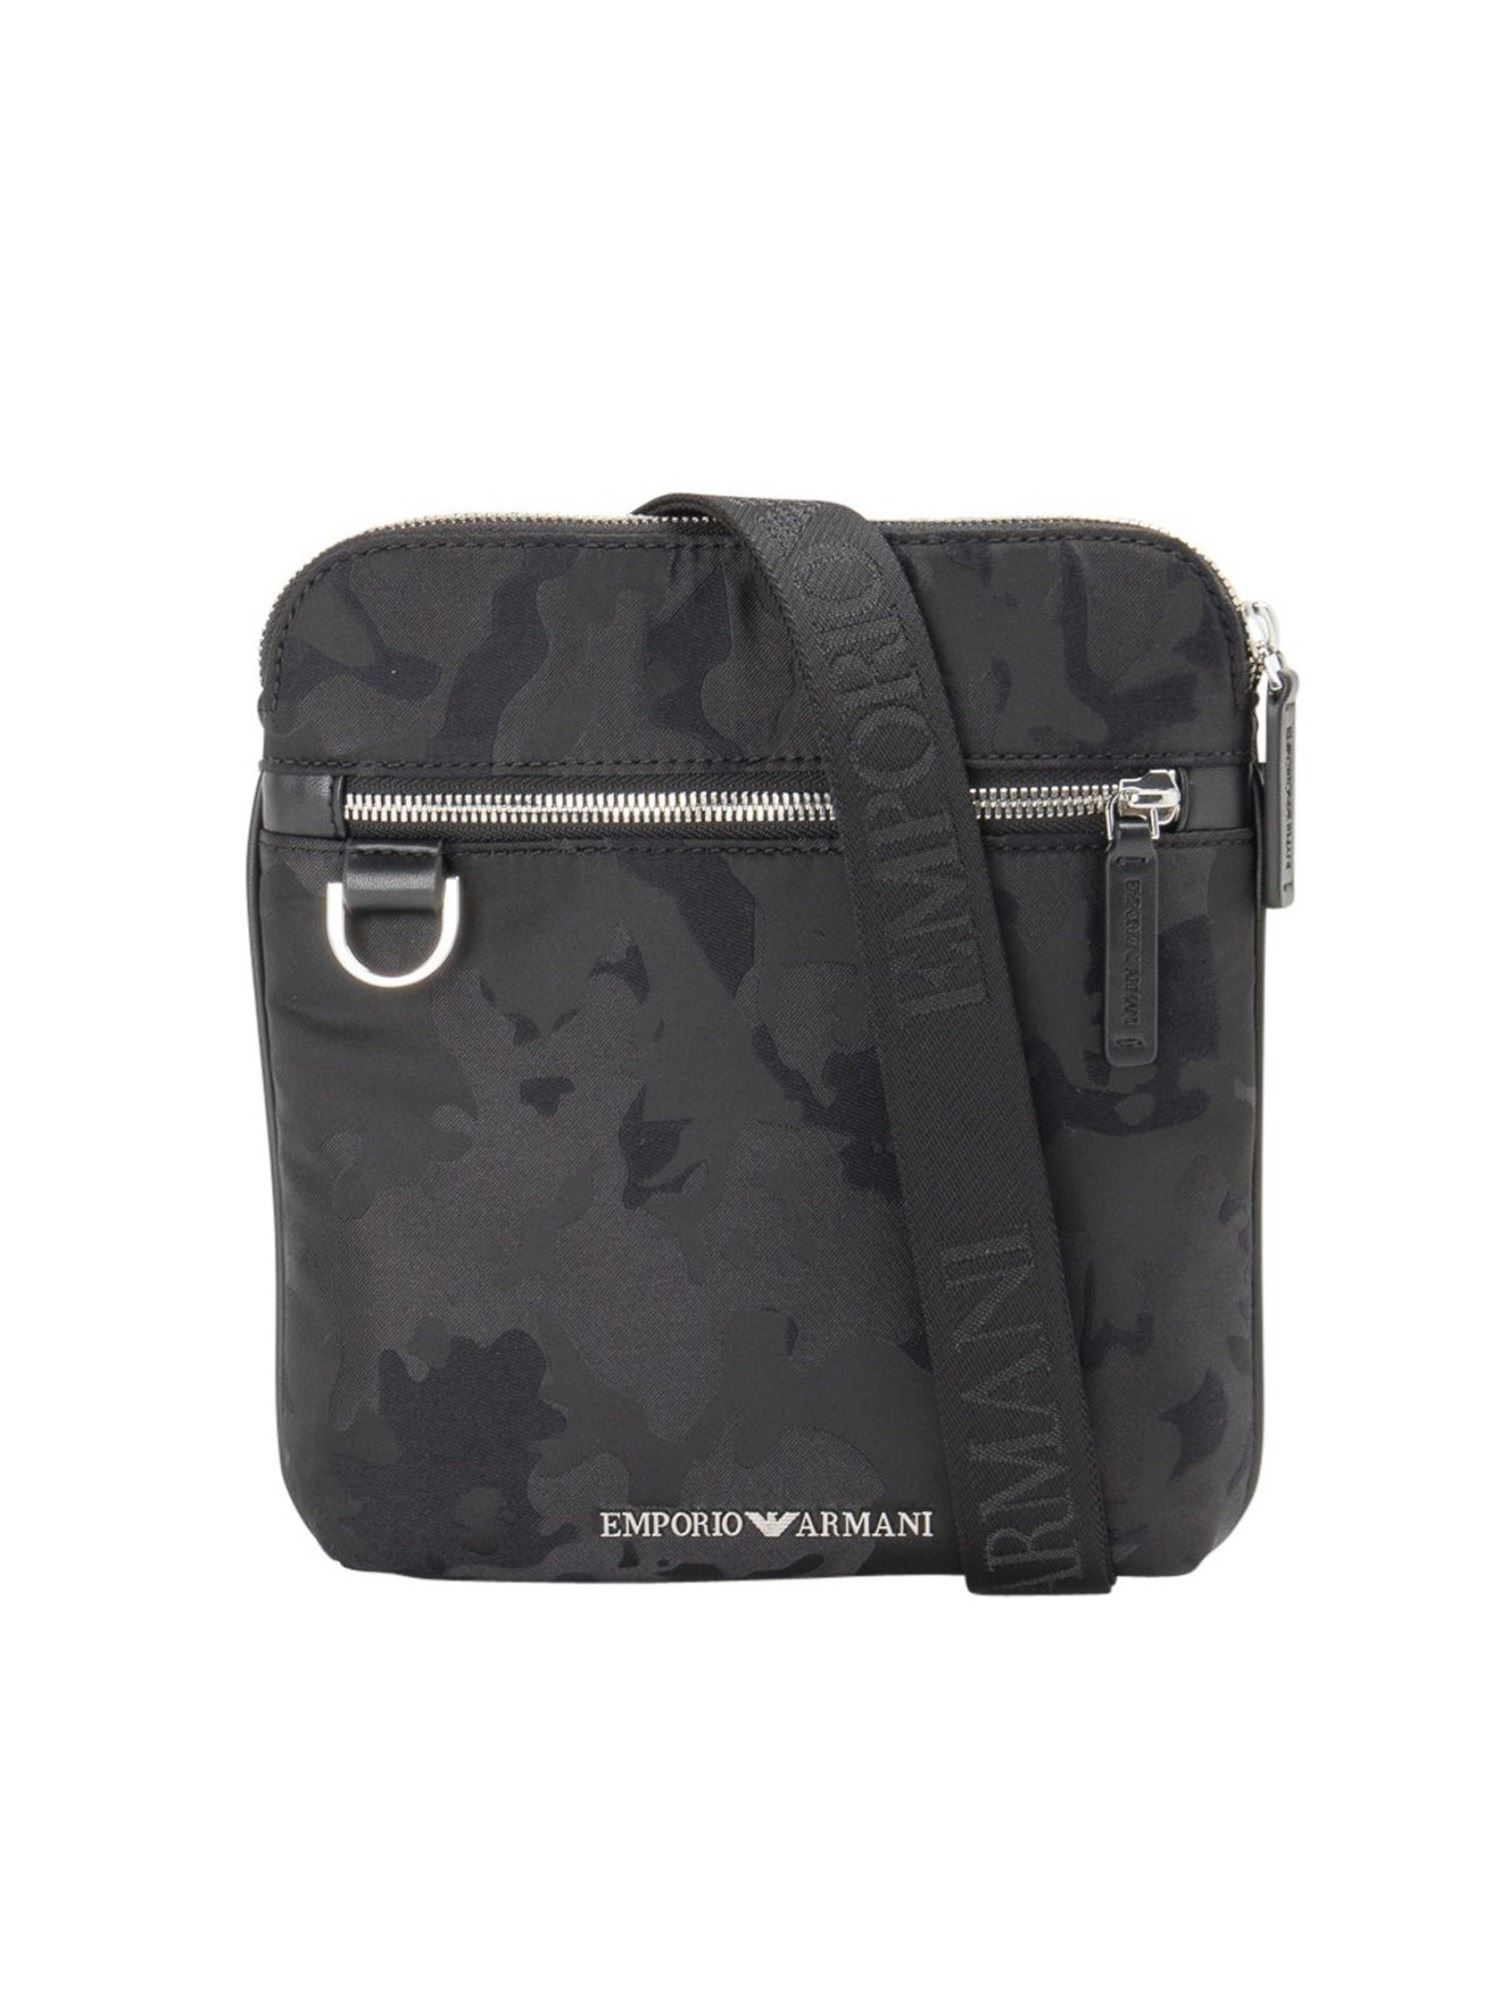 Emporio Armani CAMOUFLAGE SHOULDER BAG IN BLACK